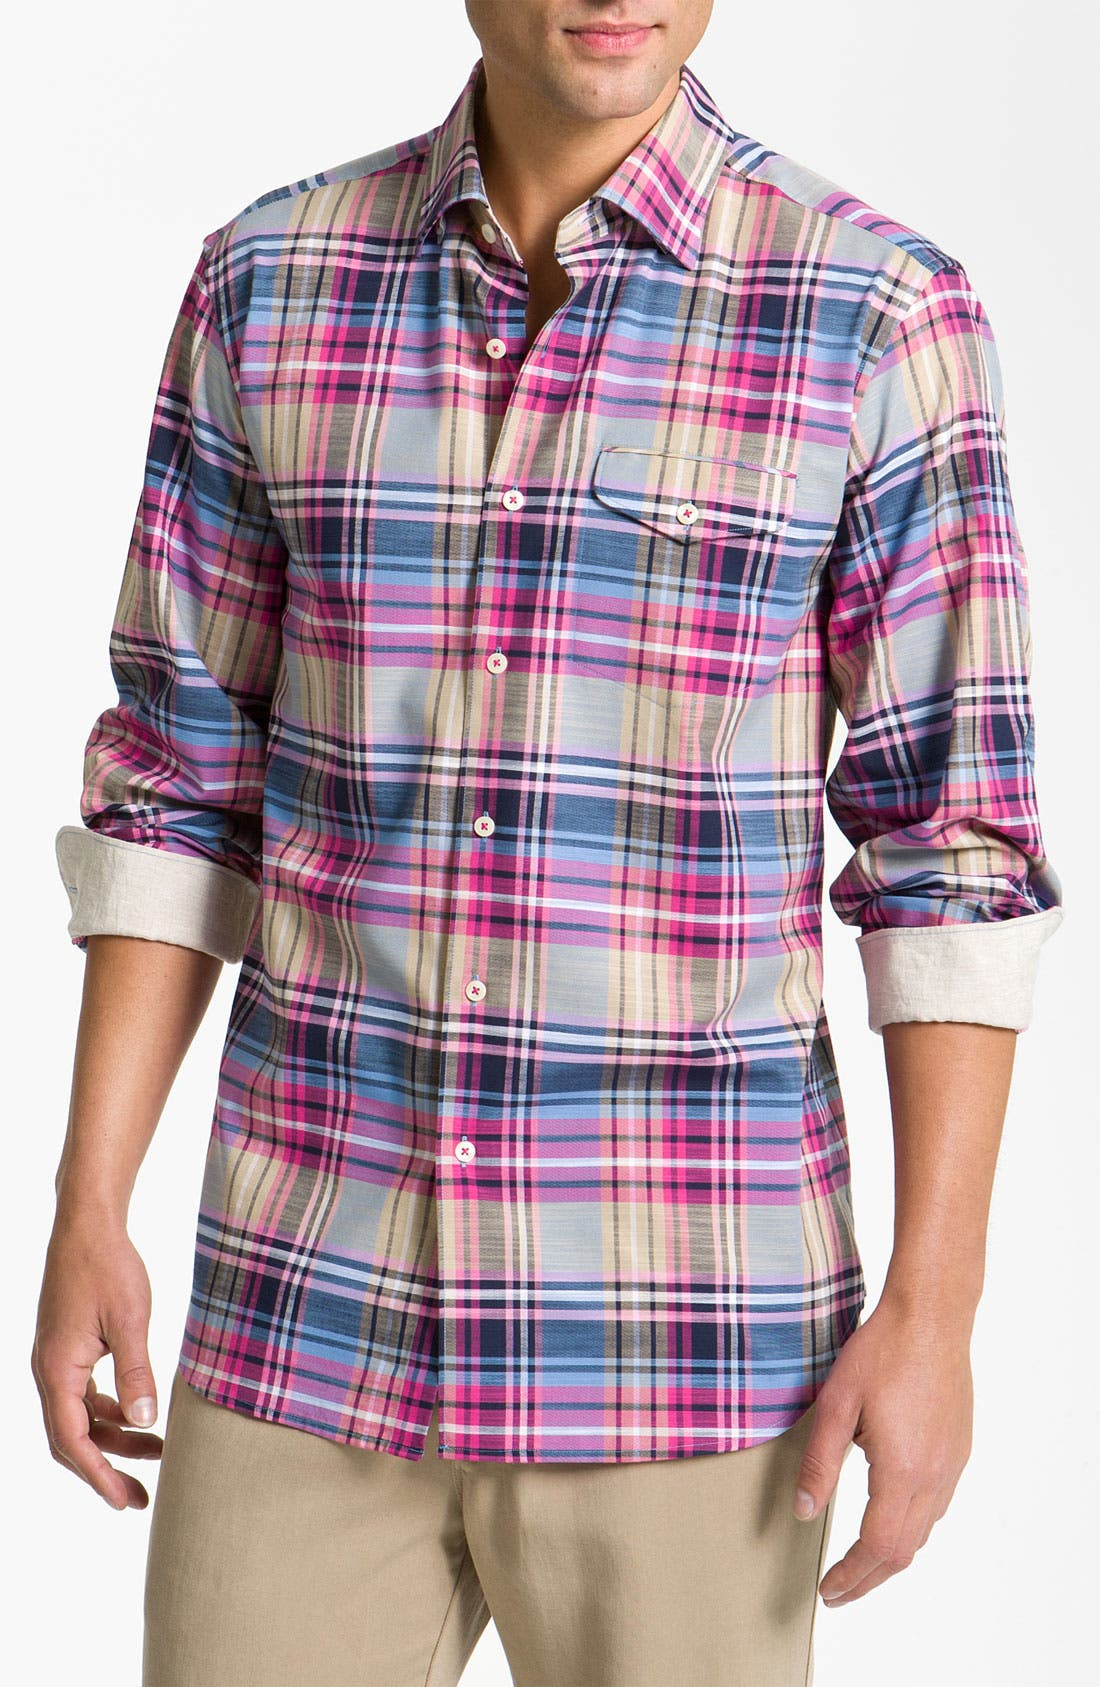 Alternate Image 1 Selected - Tommy Bahama 'Mangrove Plaid' Sport Shirt